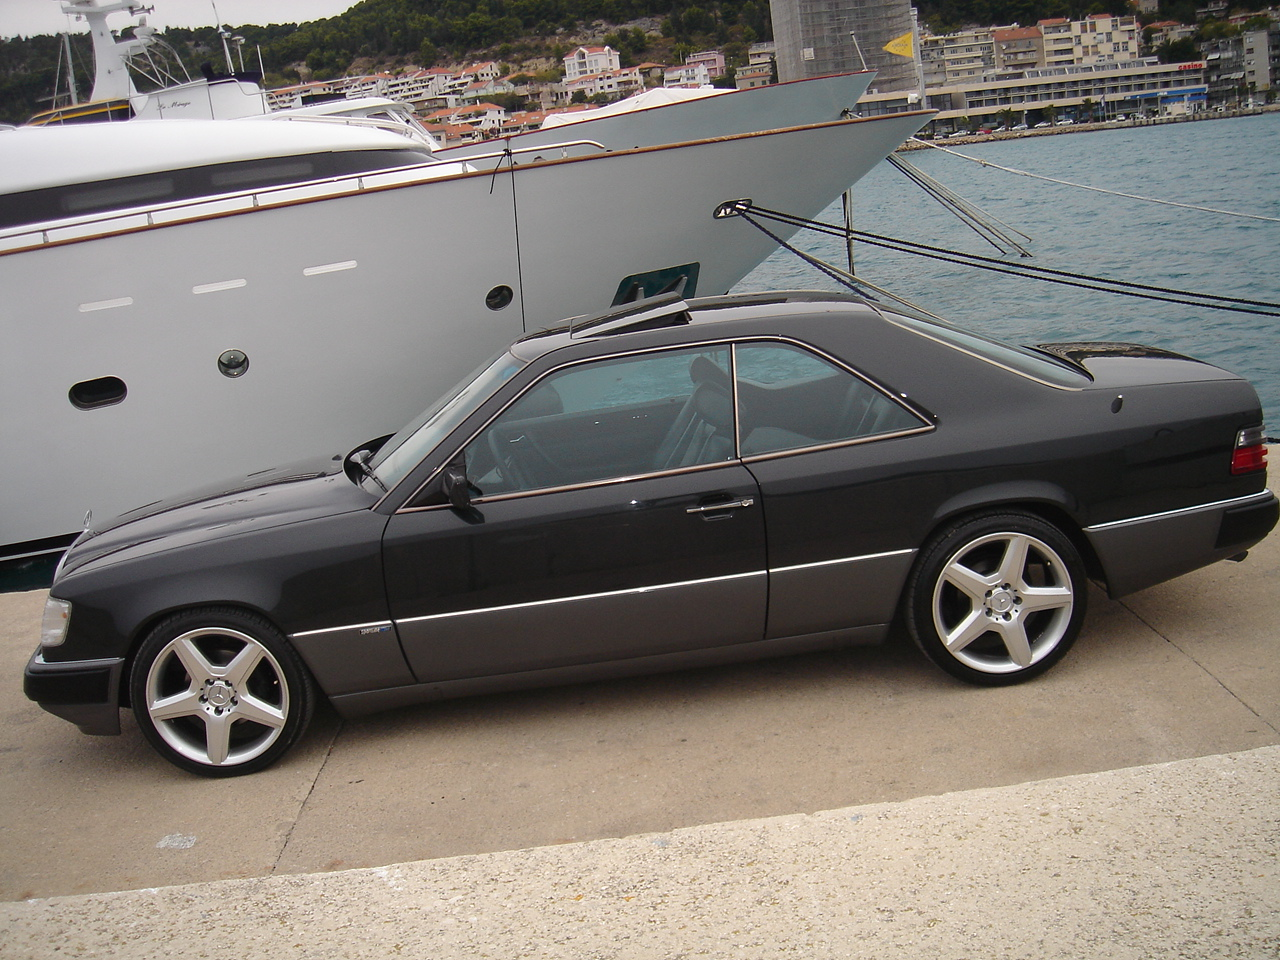 1990 mercedes benz 300 class pictures cargurus for How much is a 1990 mercedes benz worth